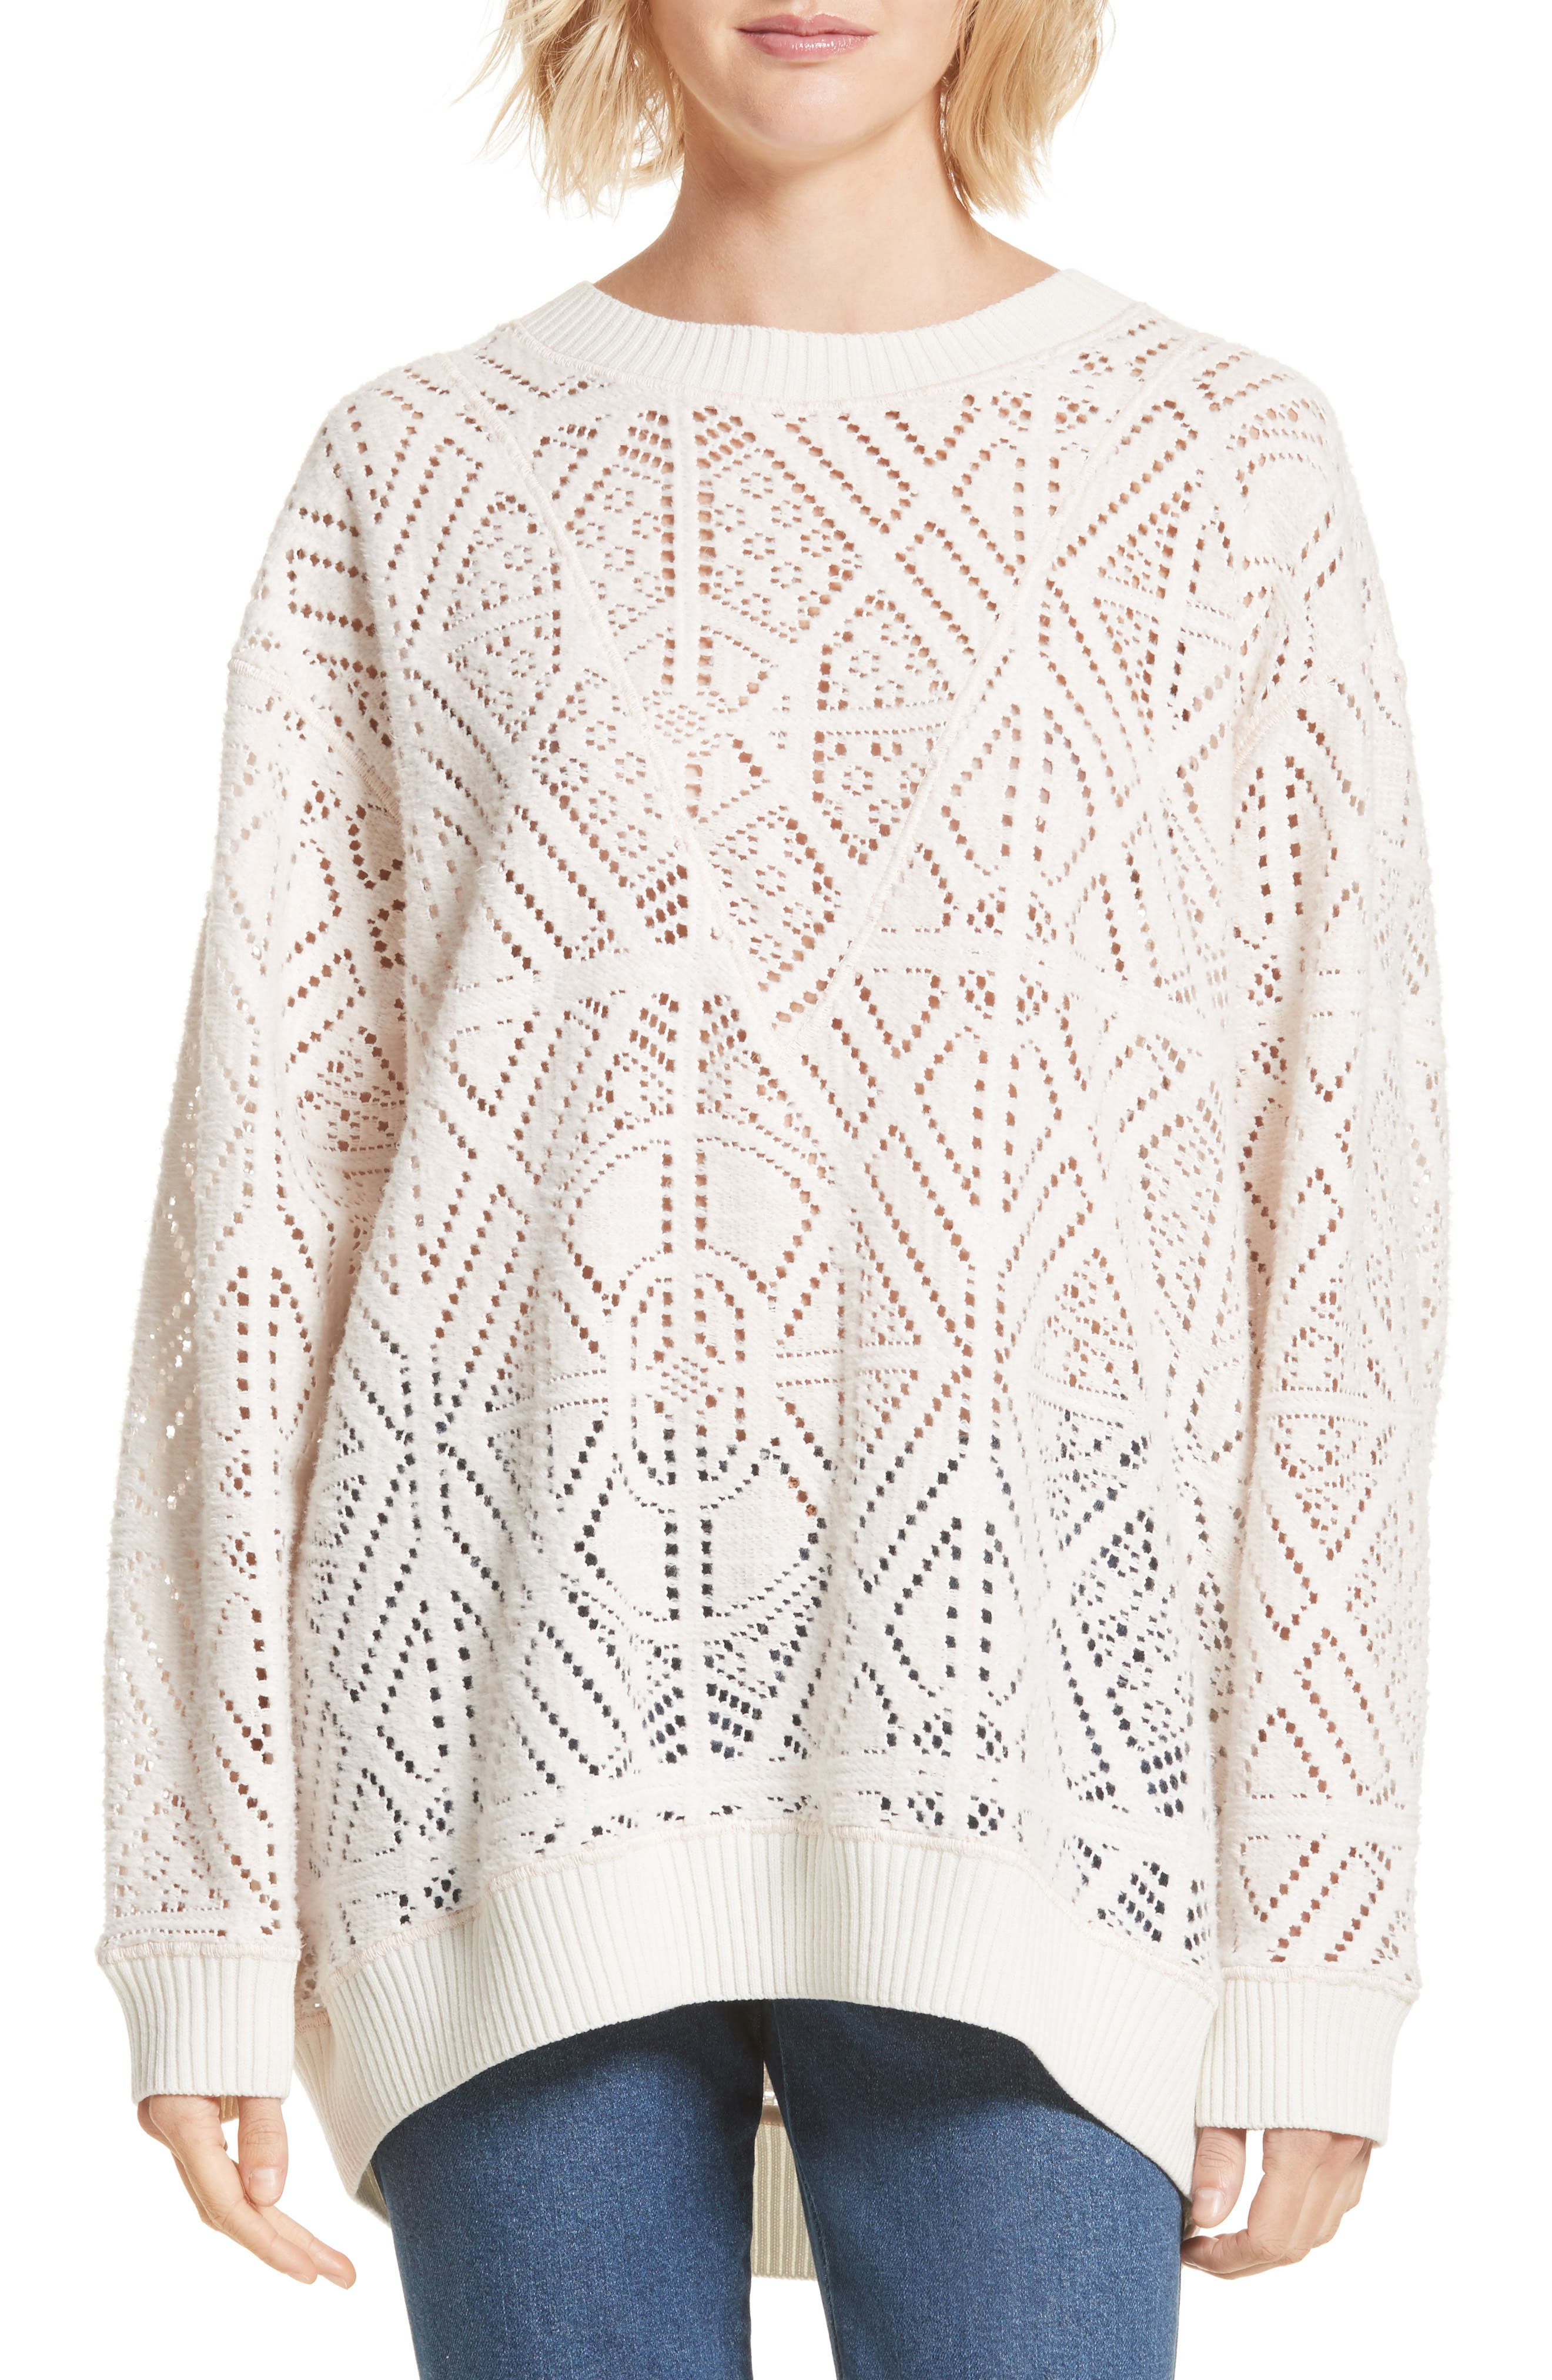 Lace Knit Sweater,                             Main thumbnail 1, color,                             901